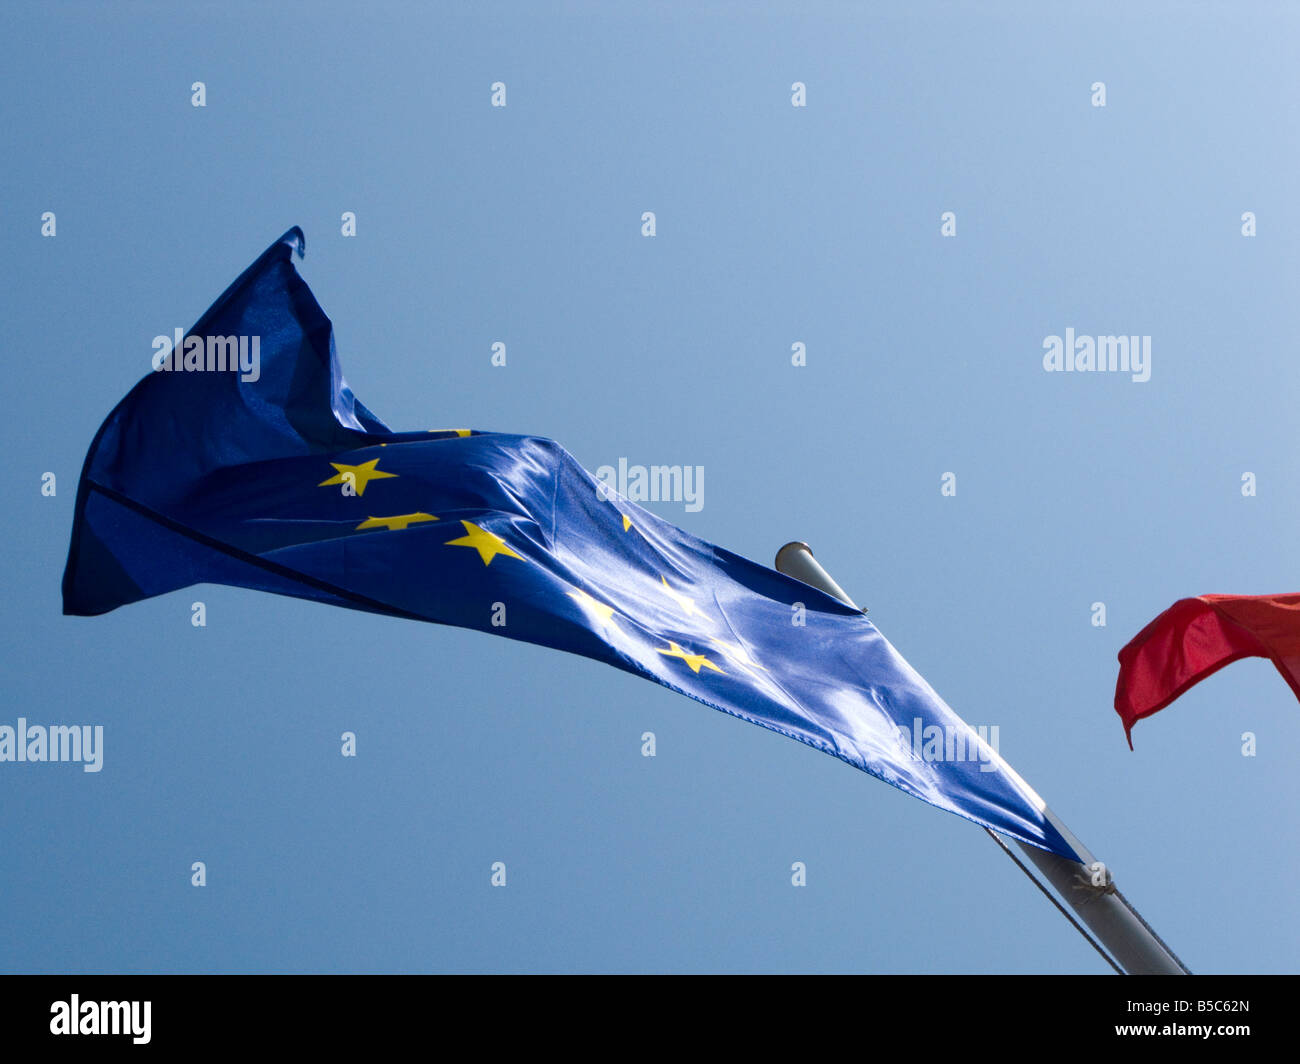 European Union flag flying against a clear blue sky - Stock Image